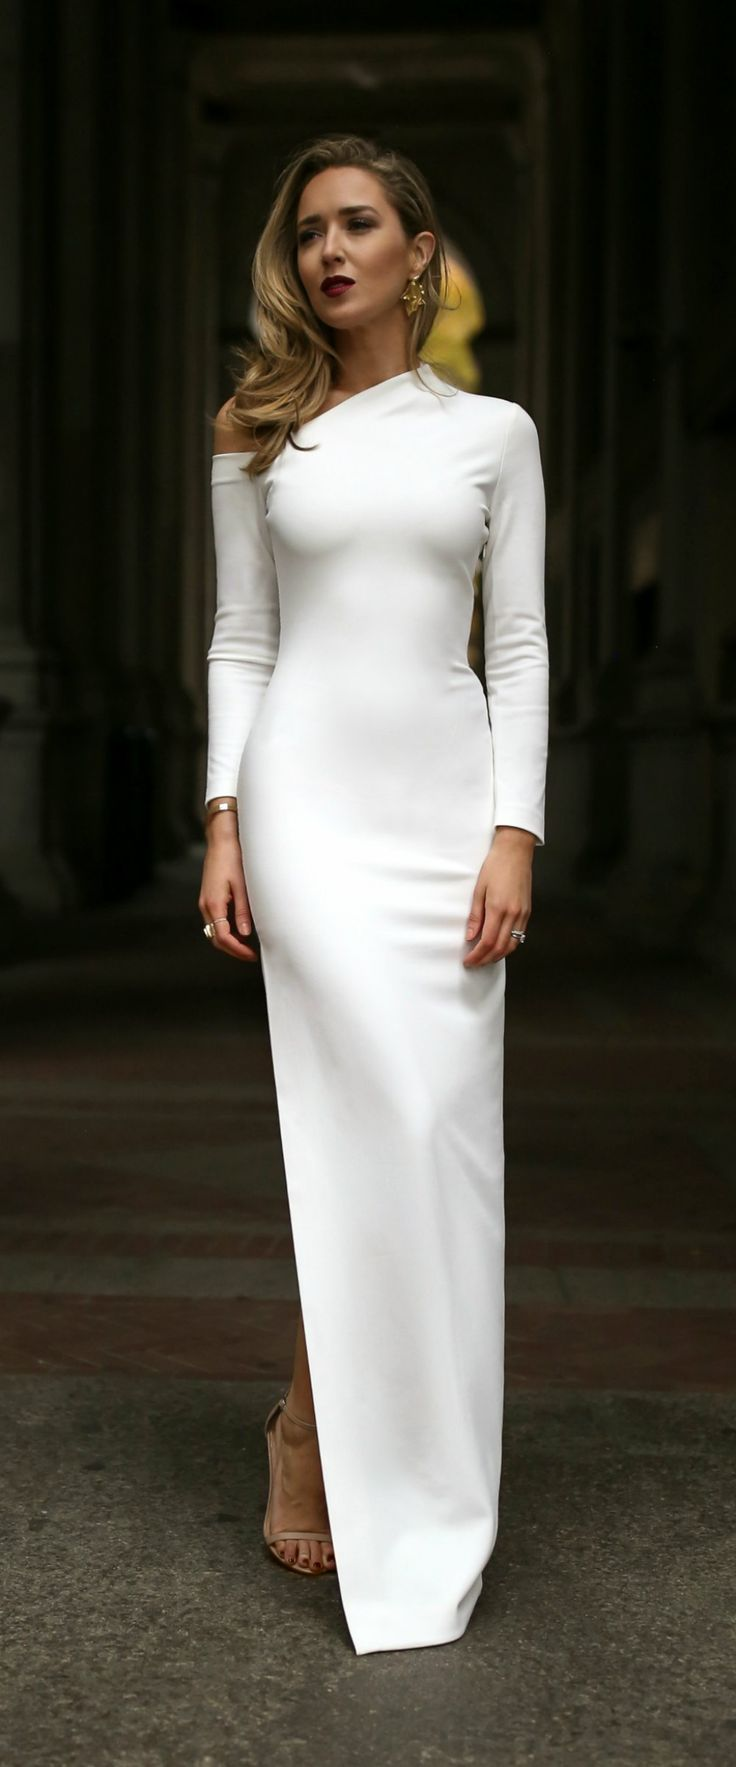 8ae5aedb4a0d Brides Rehearsal Dinner Outfit // White long sleeve cold shoulder crepe  maxi dress, nude